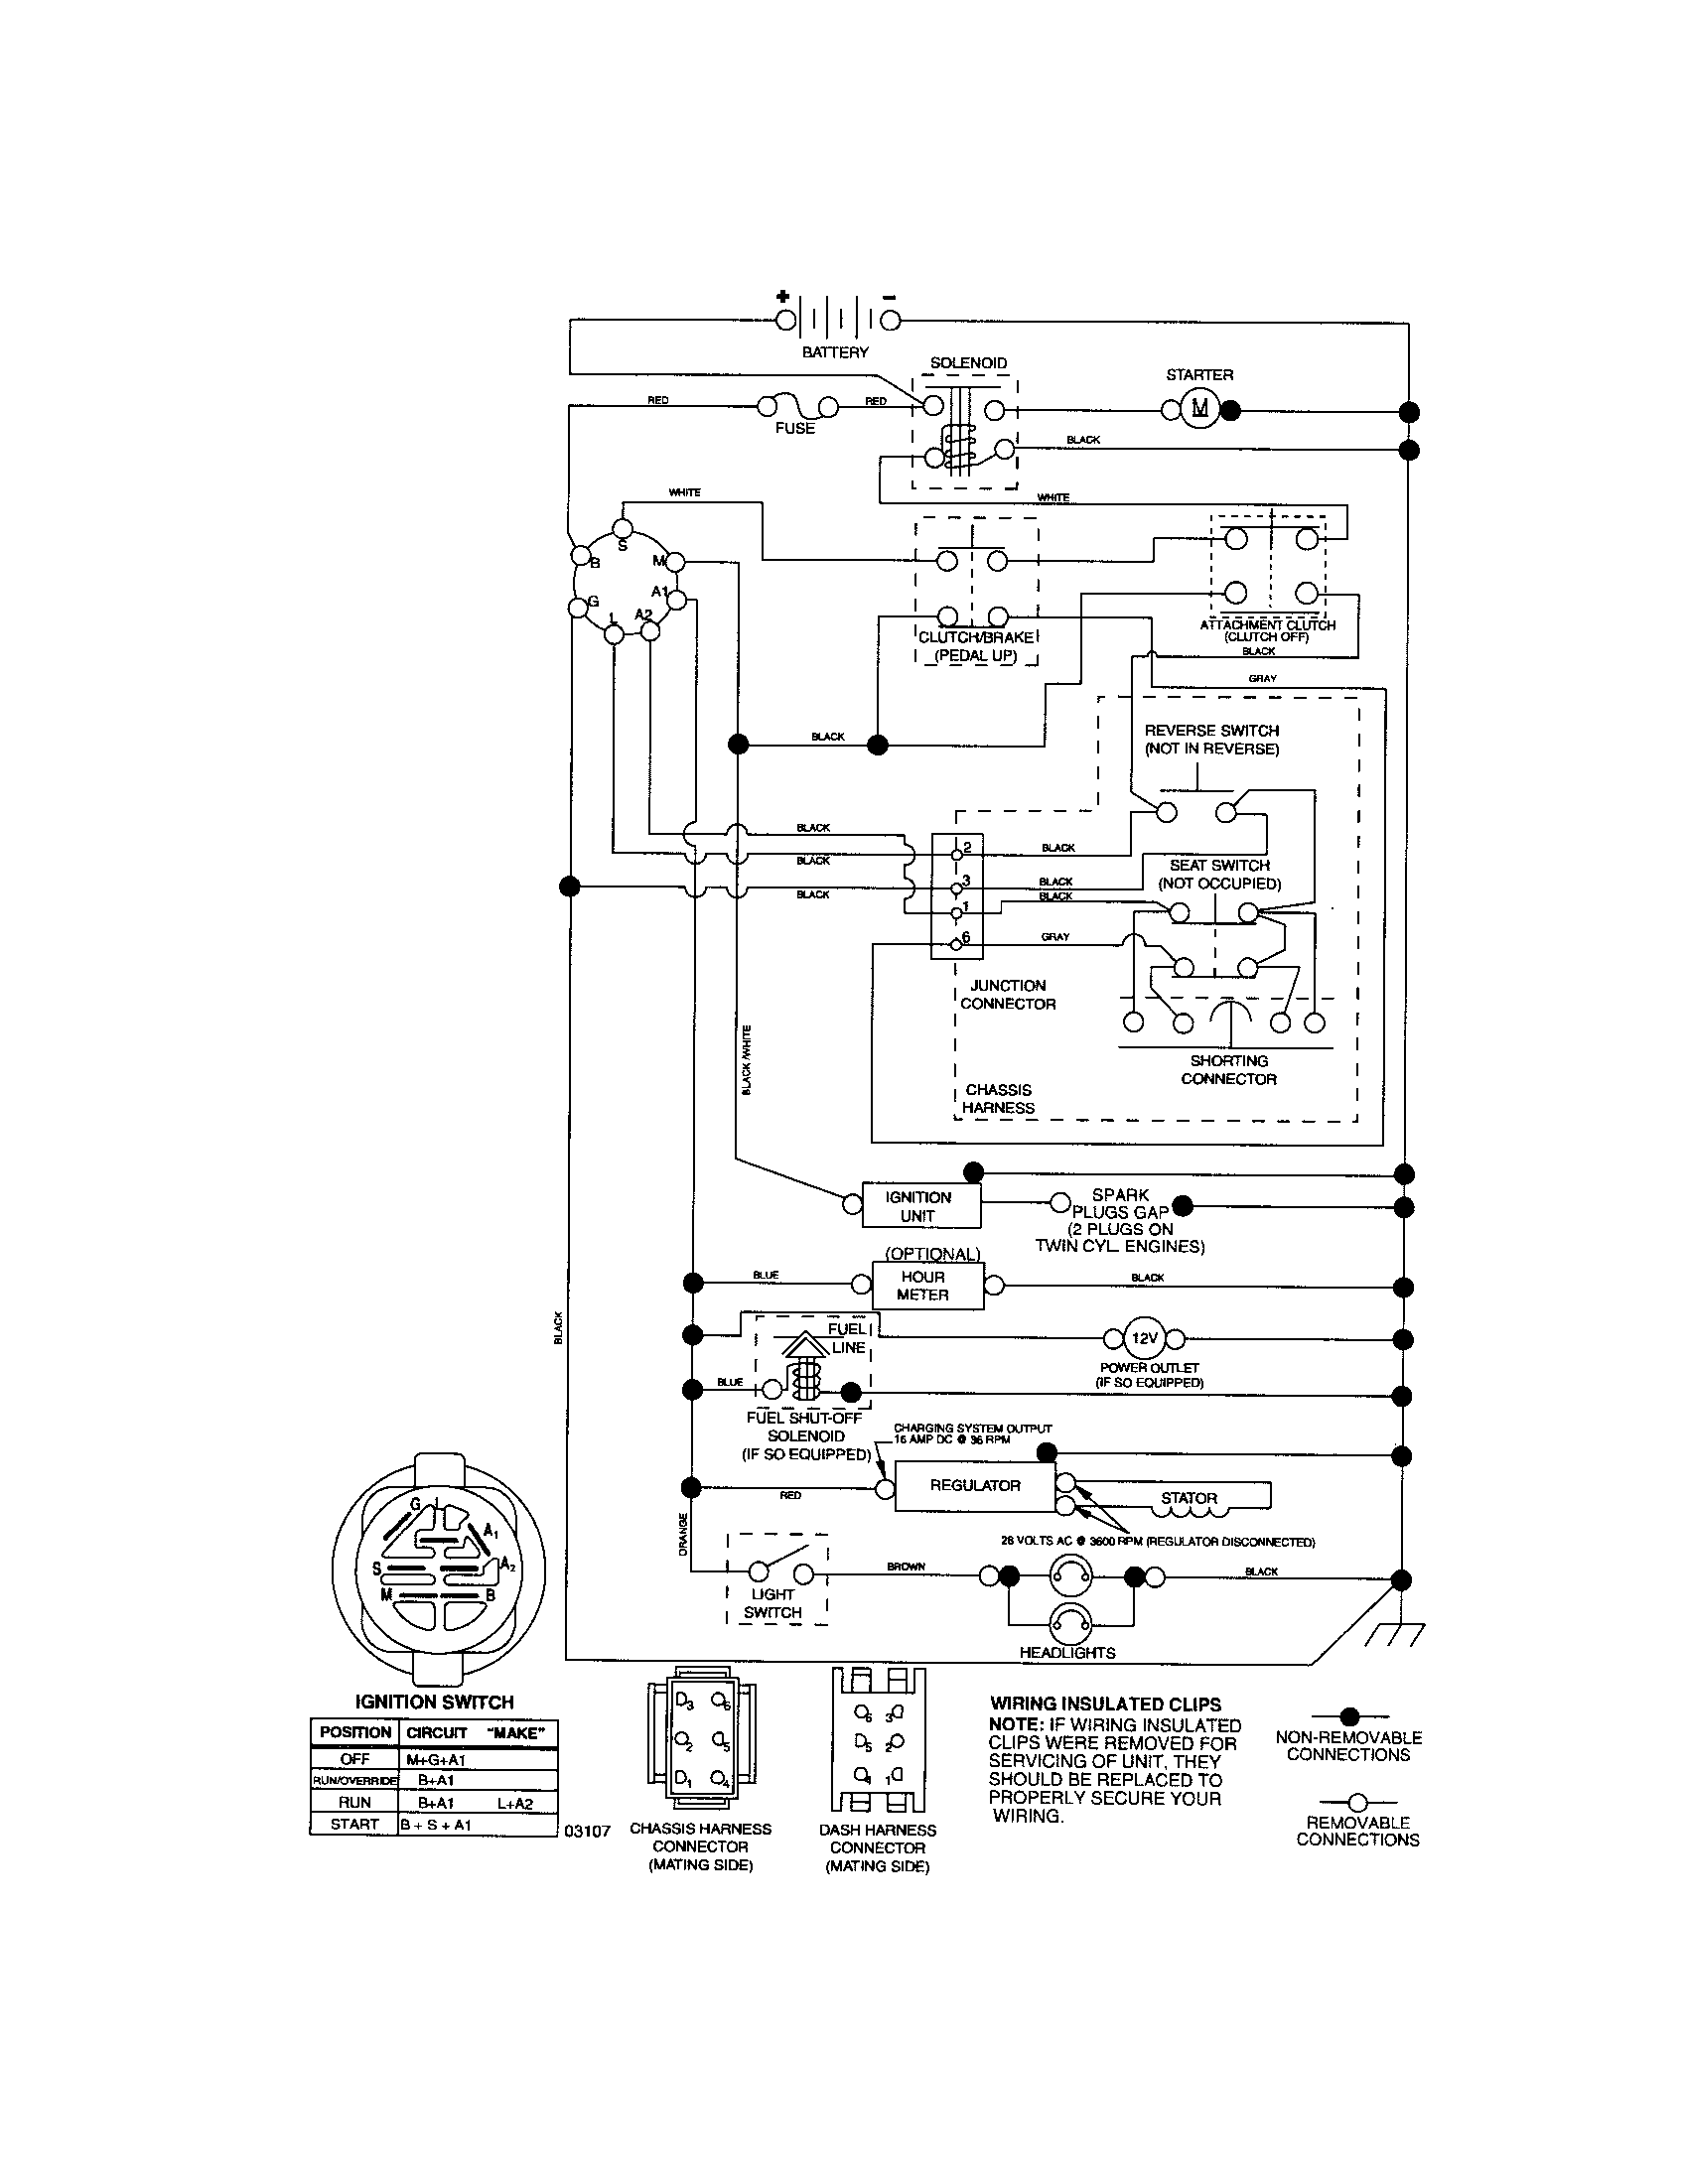 6af5f1447fd13c8443376822ddc1e105 craftsman riding mower electrical diagram wiring diagram craftsman lt1000 wiring diagram at eliteediting.co